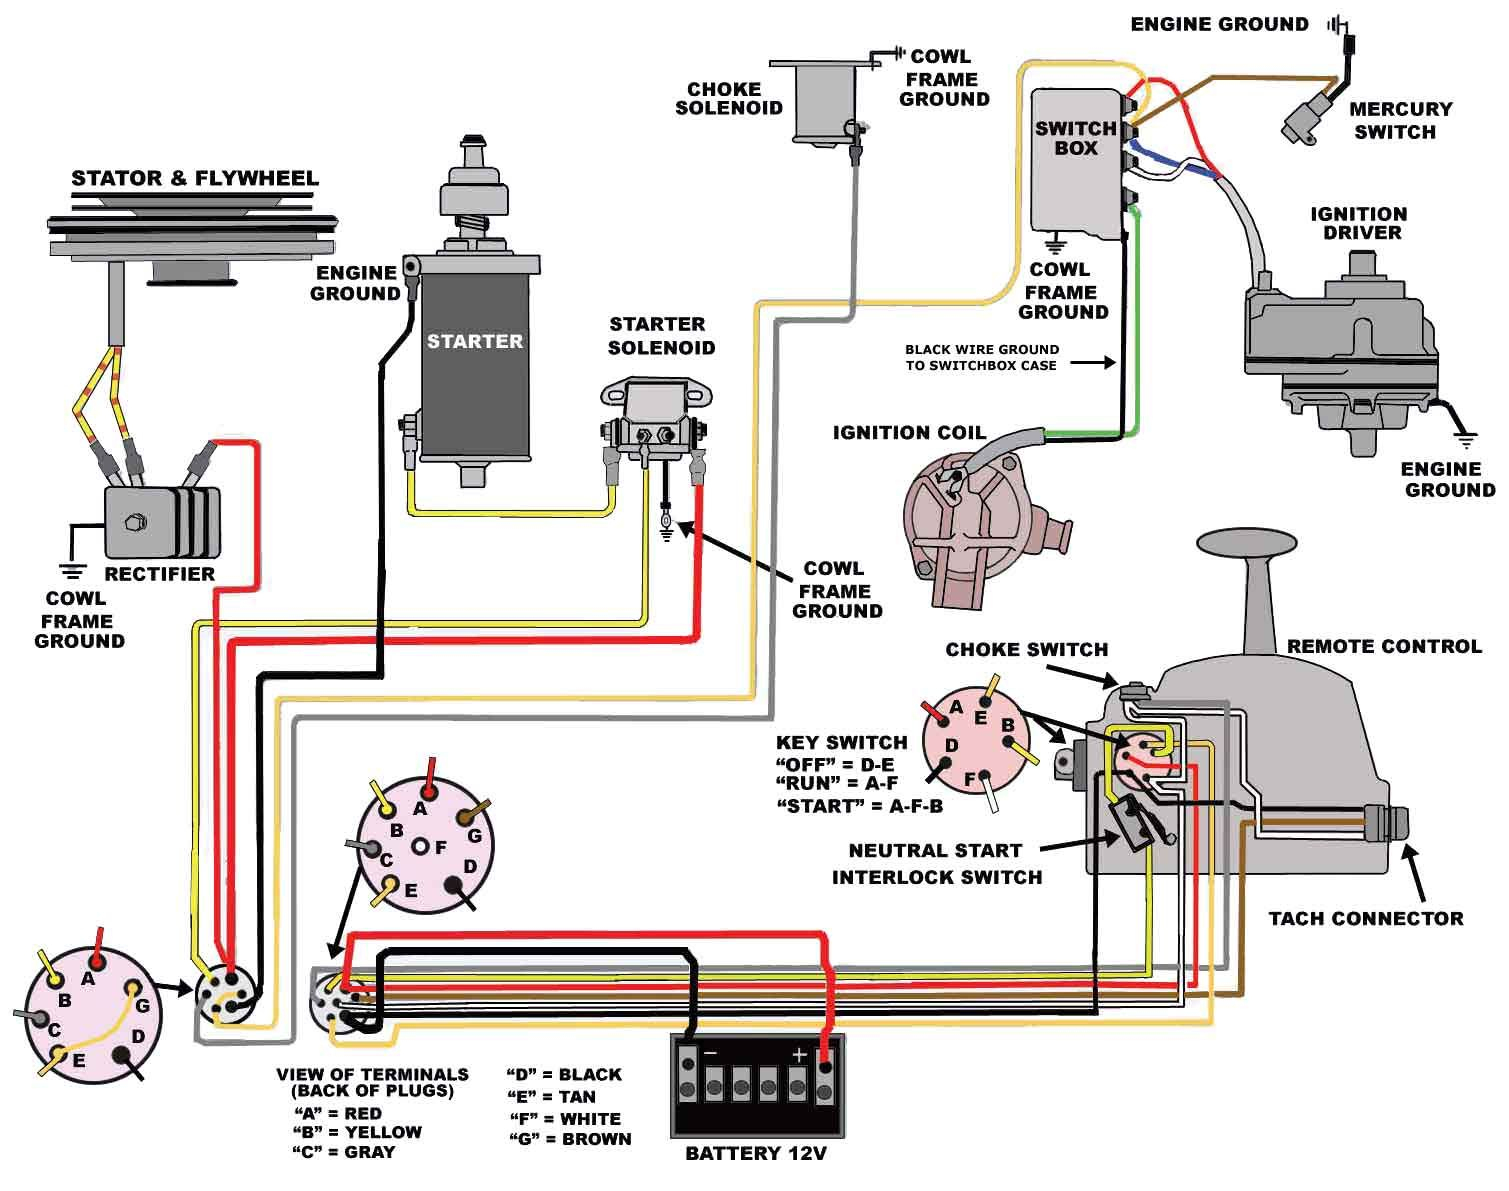 Outboard Ignition Switch Wiring Diagram - Today Wiring Diagram - Mercury Outboard Ignition Switch Wiring Diagram